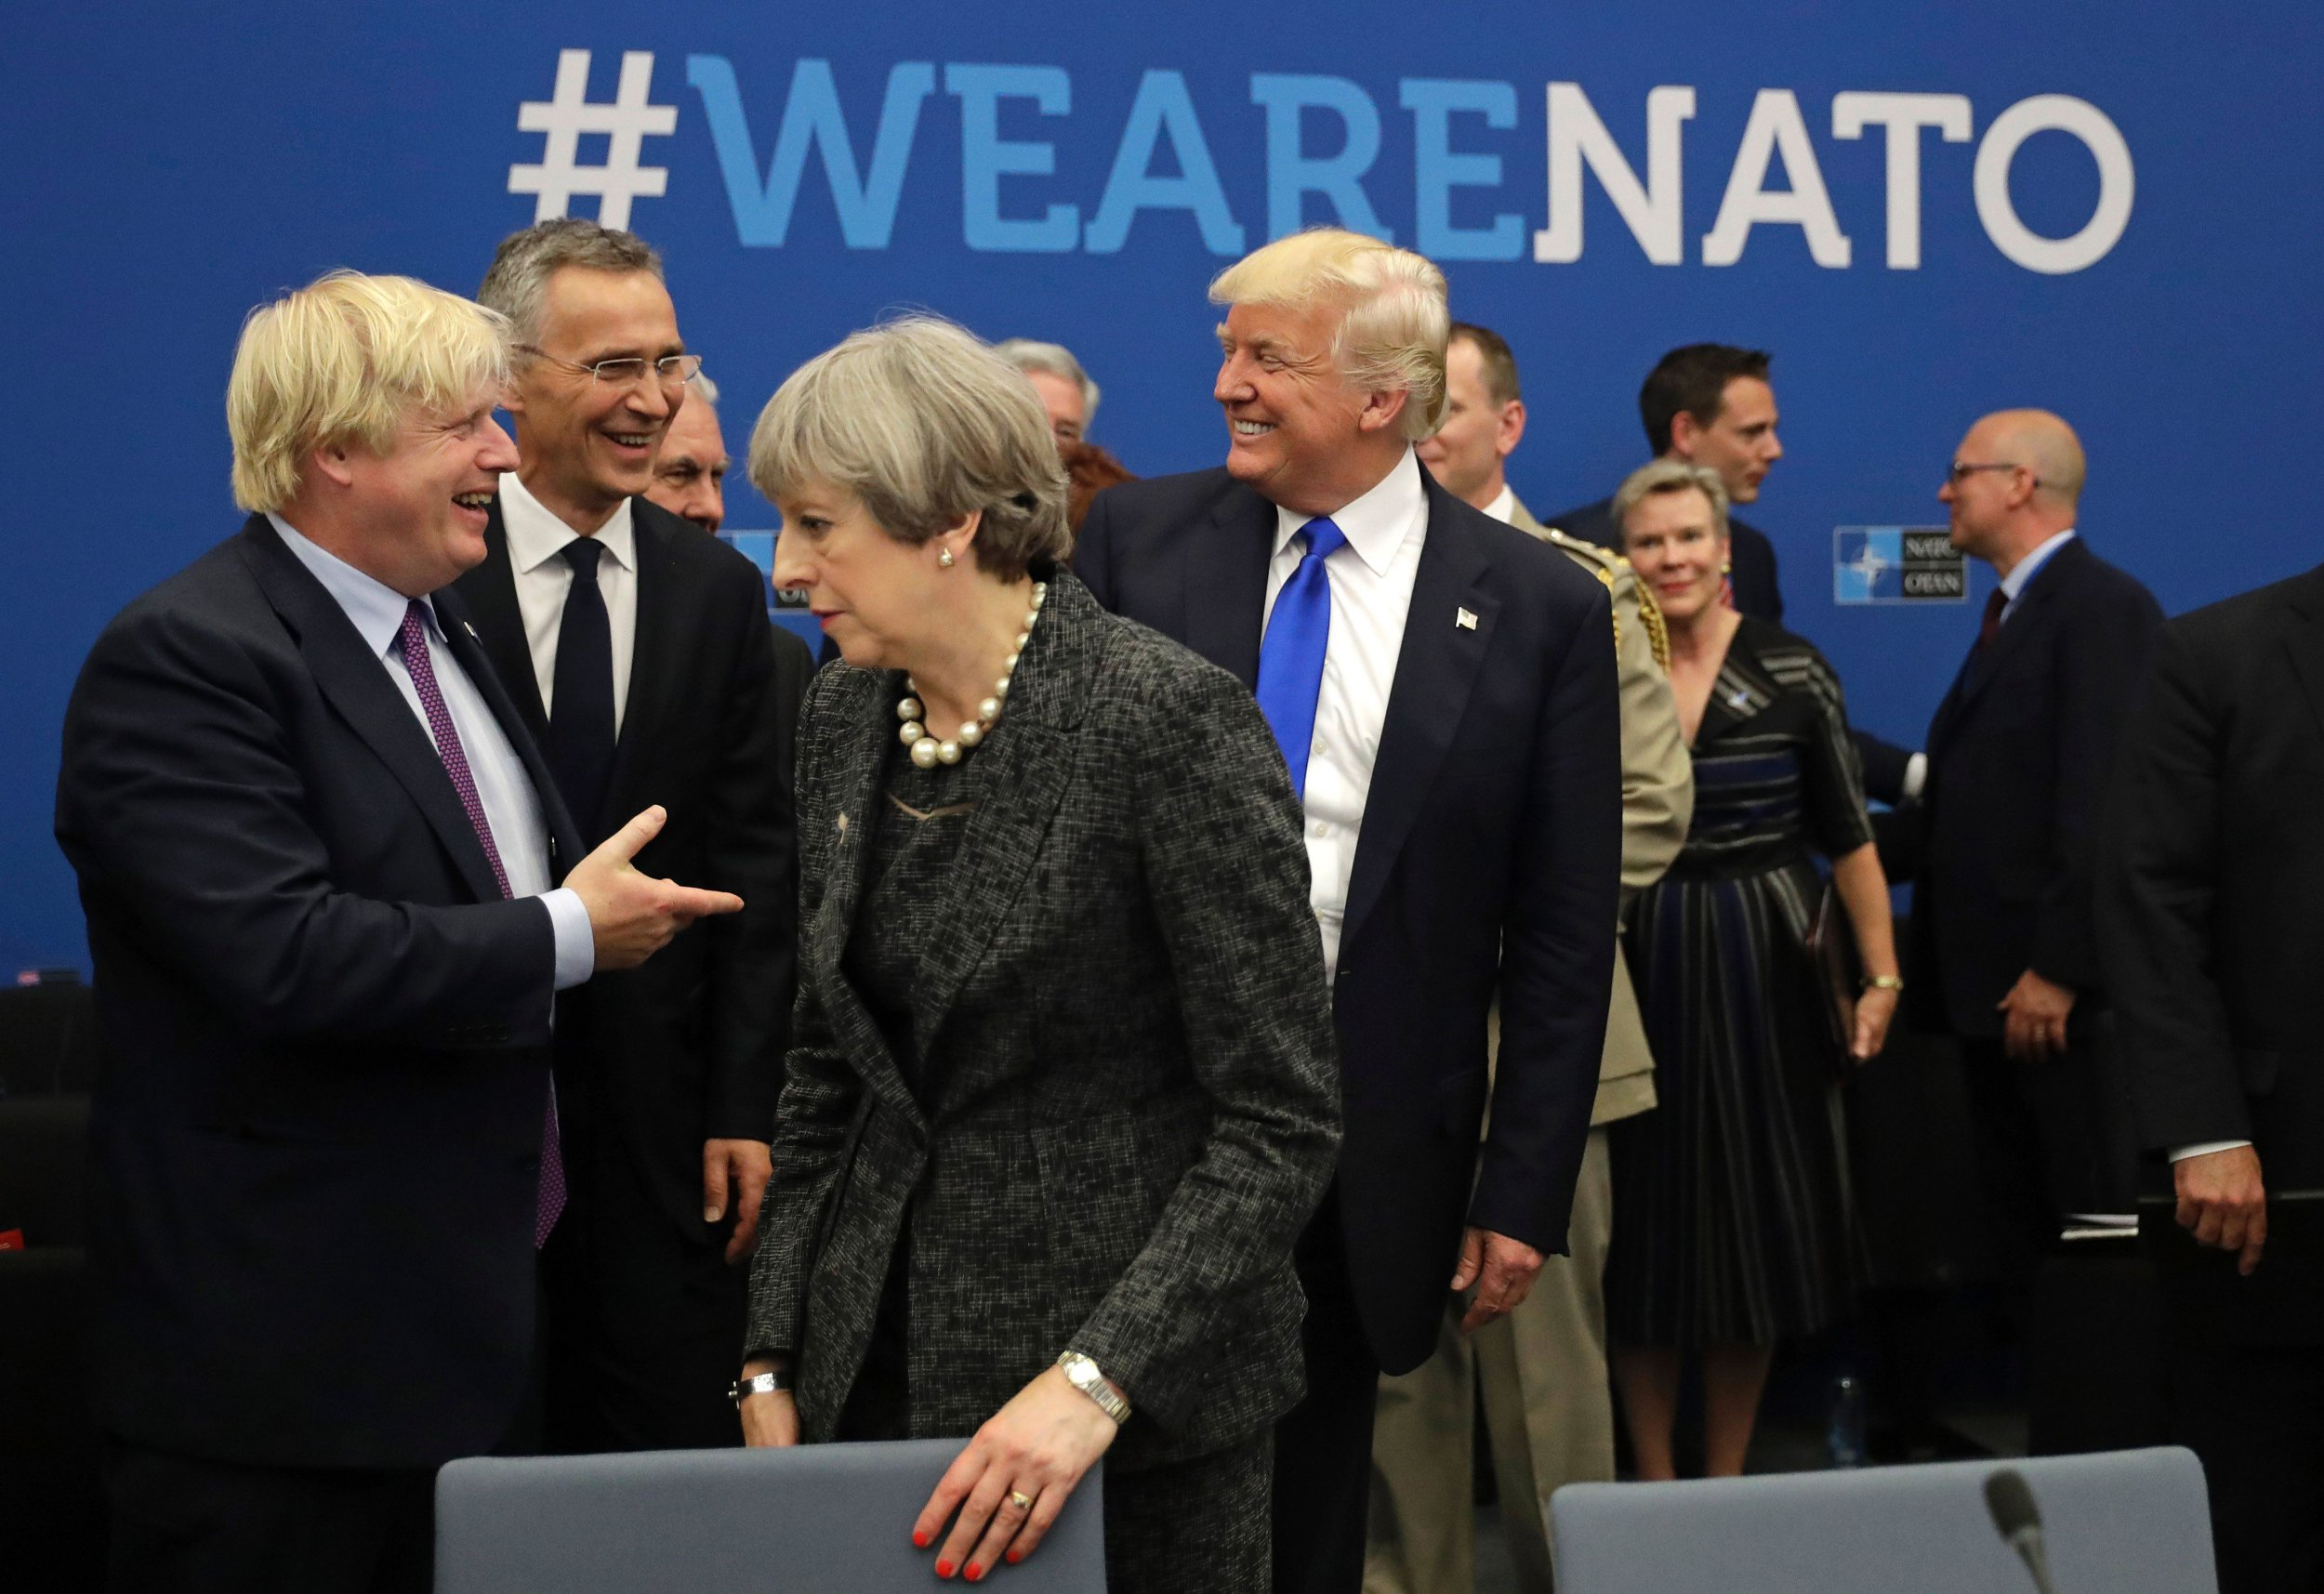 U.S. President Donald Trump (C) reacts while speaking to NATO Secretary General Jens Stoltenberg (2-L) and British Foreign Minister Boris Johnson (L) as Britain's Prime Minister Theresa May passes during a working dinner meeting at the NATO (North Atlantic Treaty Organization) headquarters in Brussels on May 25, 2017 during a NATO summit. / AFP PHOTO / POOL / Matt Dunham (Photo credit should read MATT DUNHAM/AFP/Getty Images)